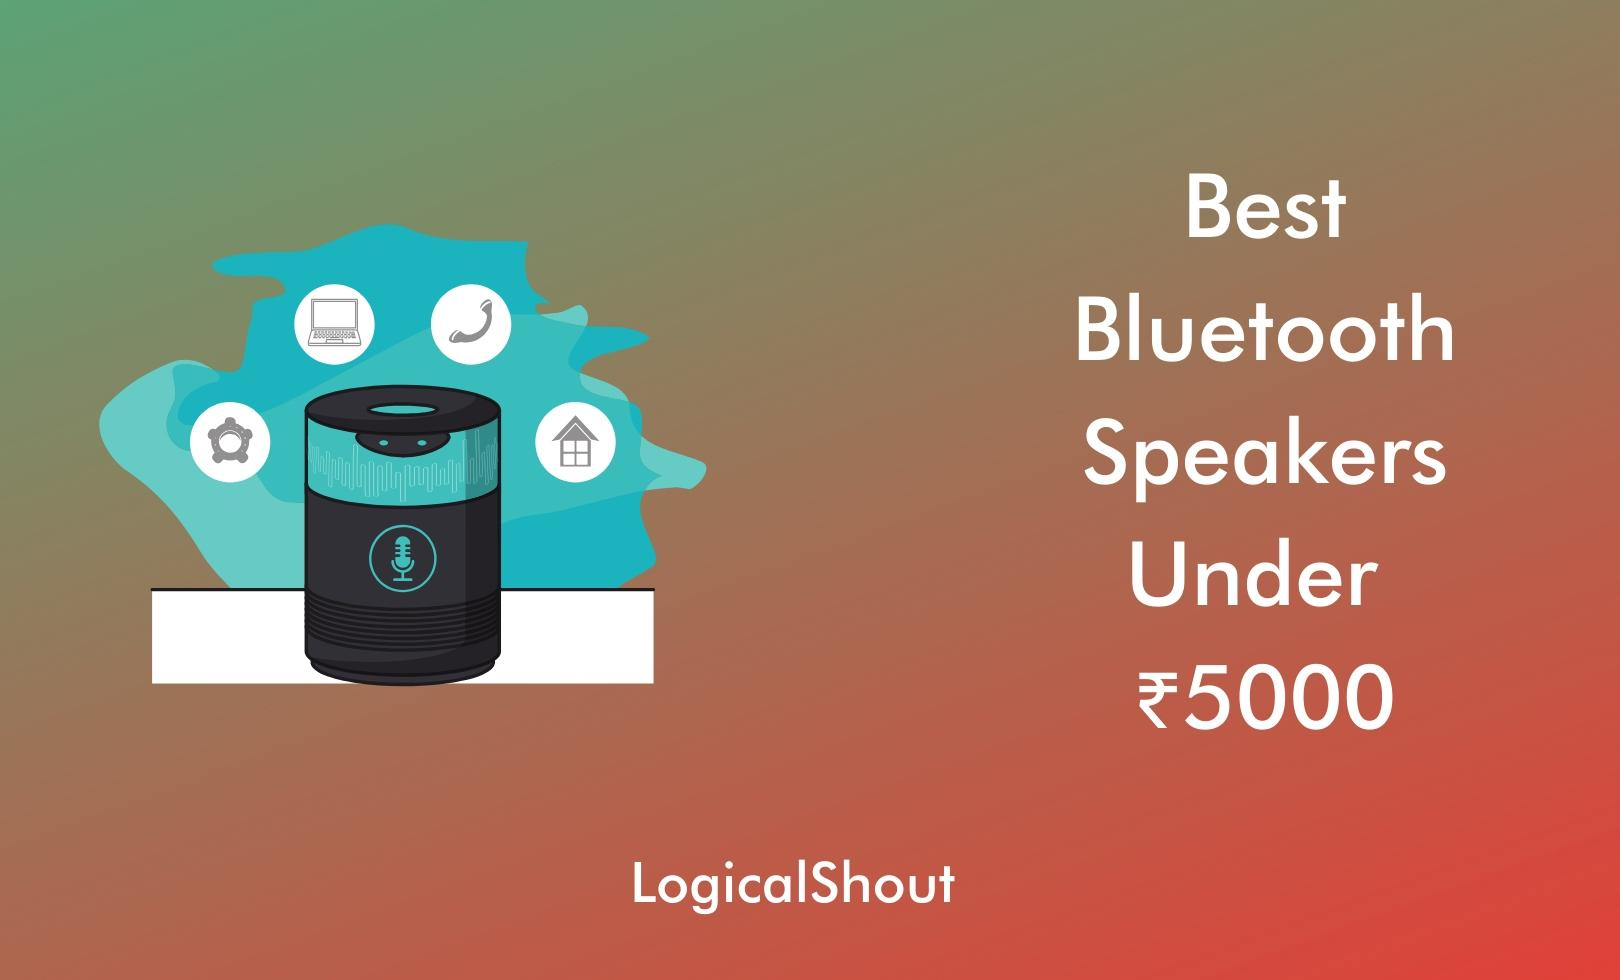 Best Bluetooth Speakers Under 5000